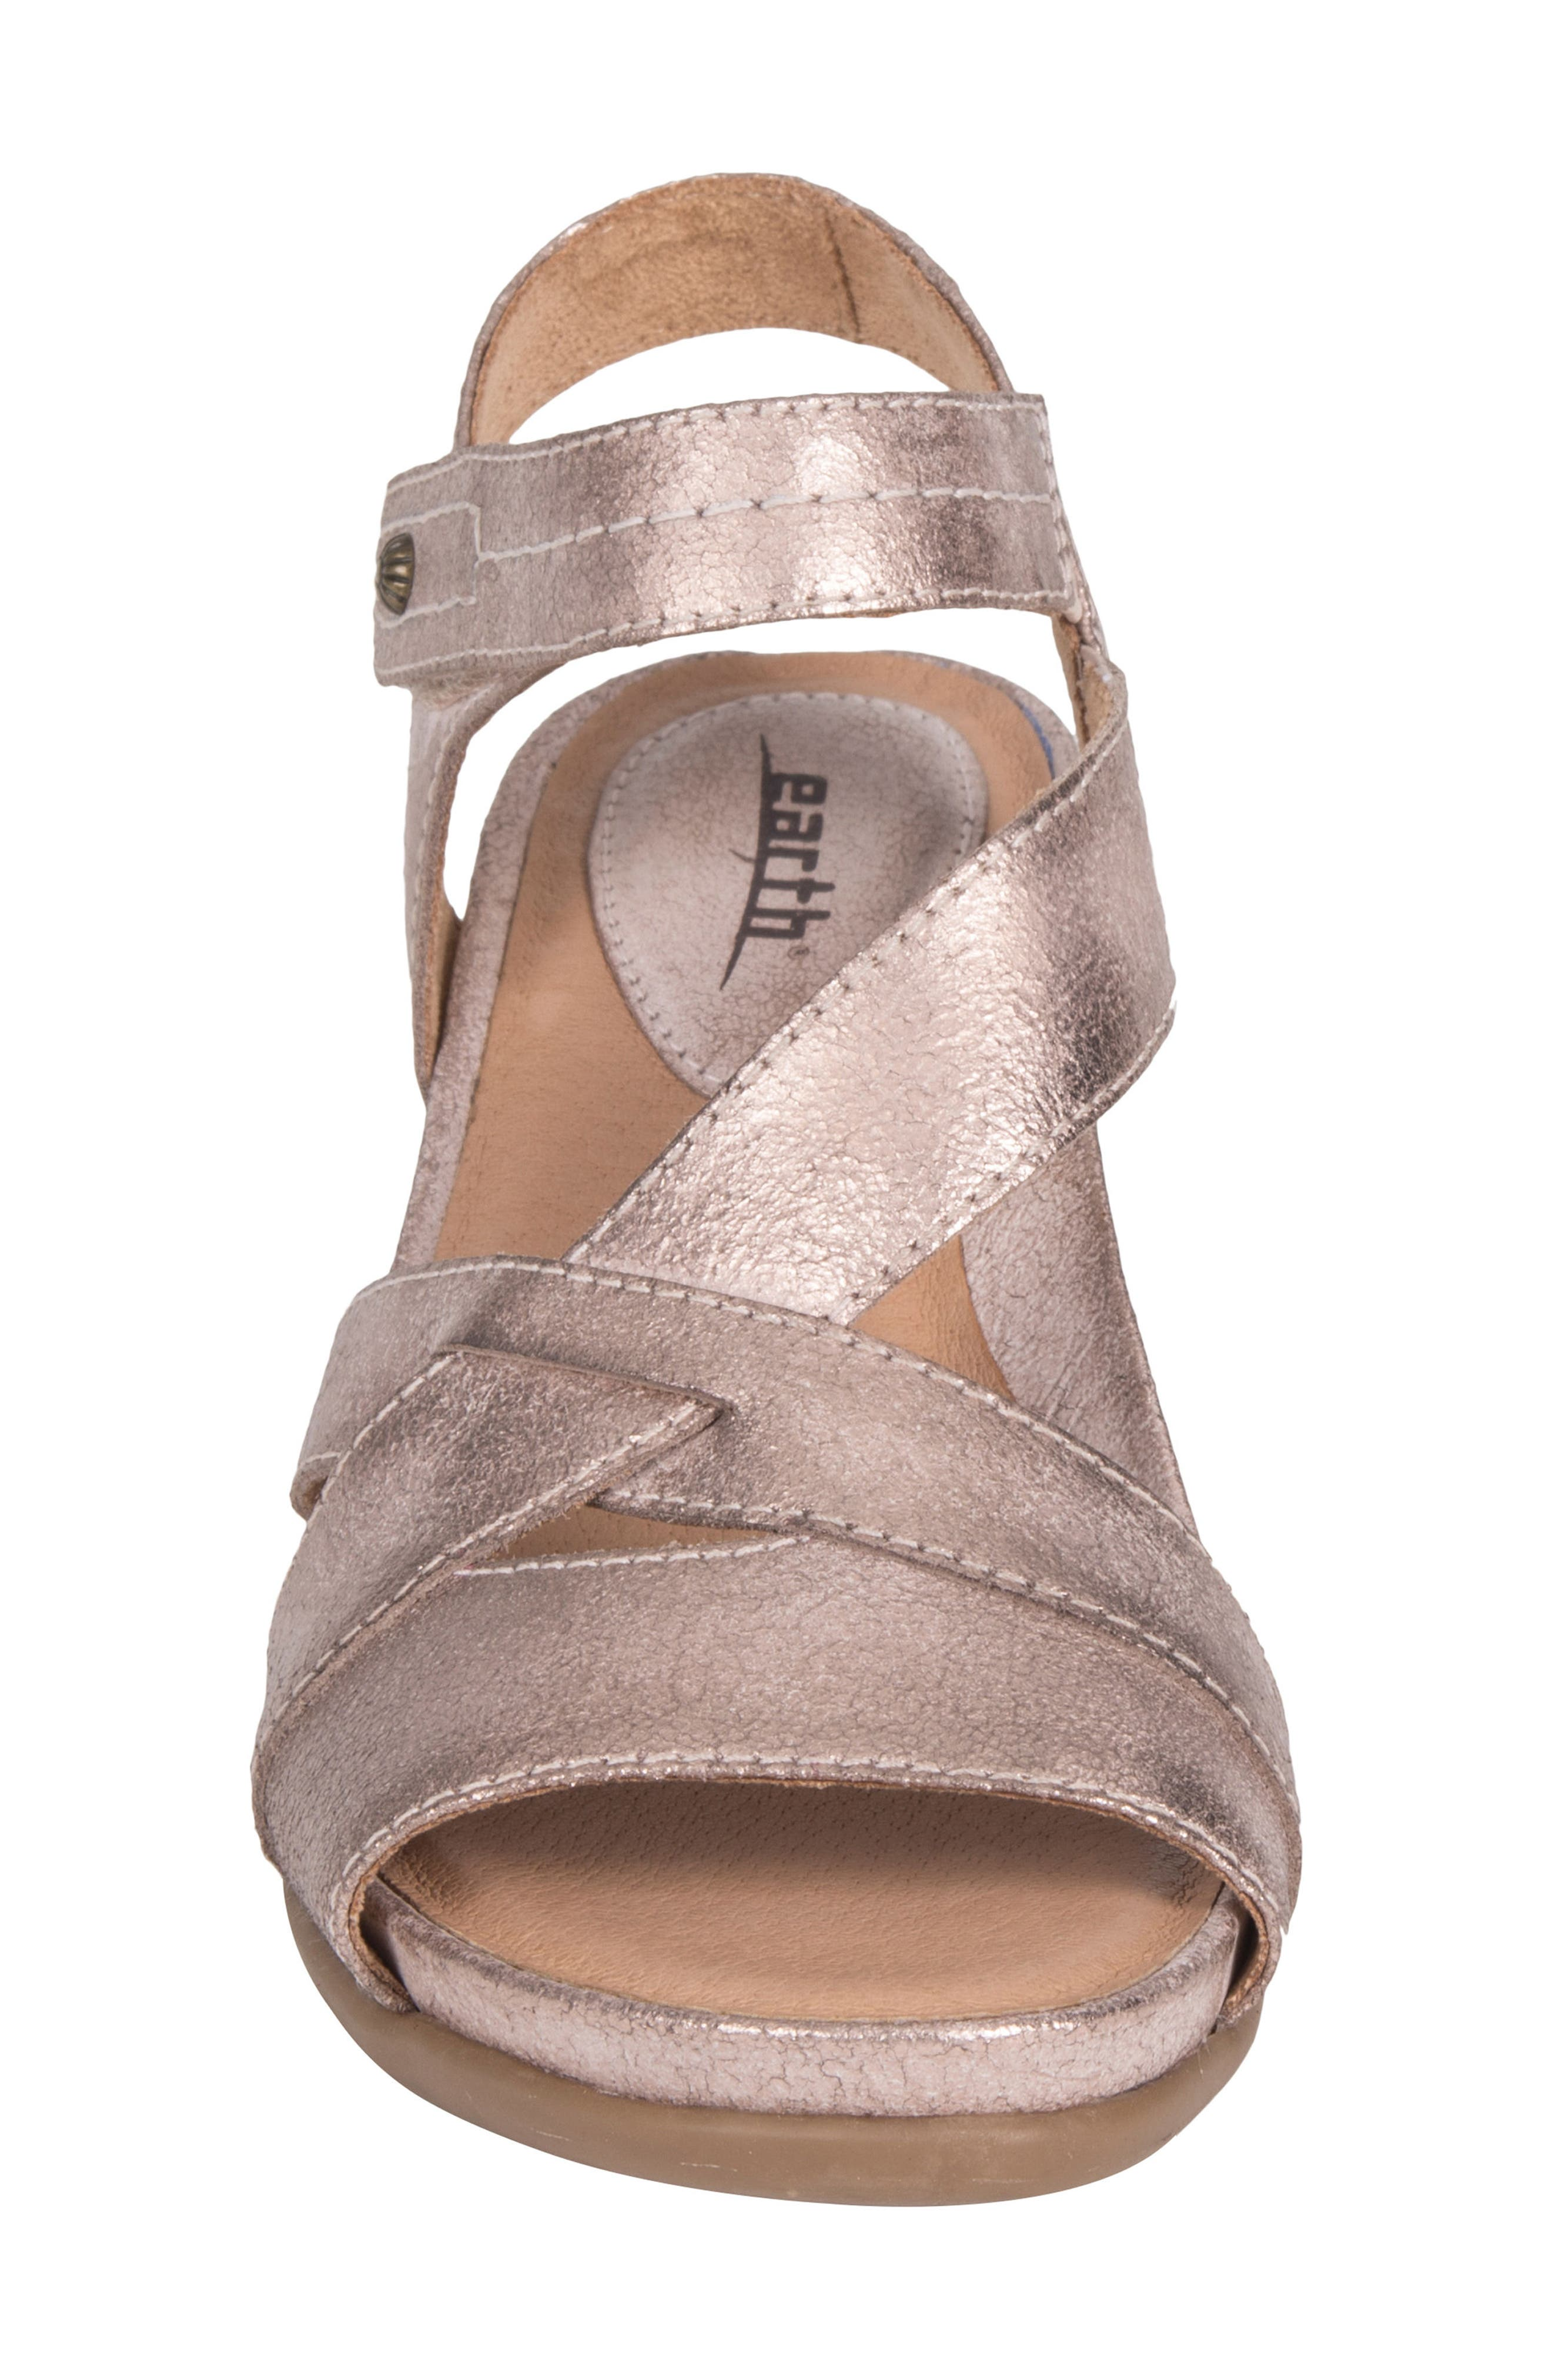 Thistle Wedge Sandal,                             Alternate thumbnail 4, color,                             Pink Leather